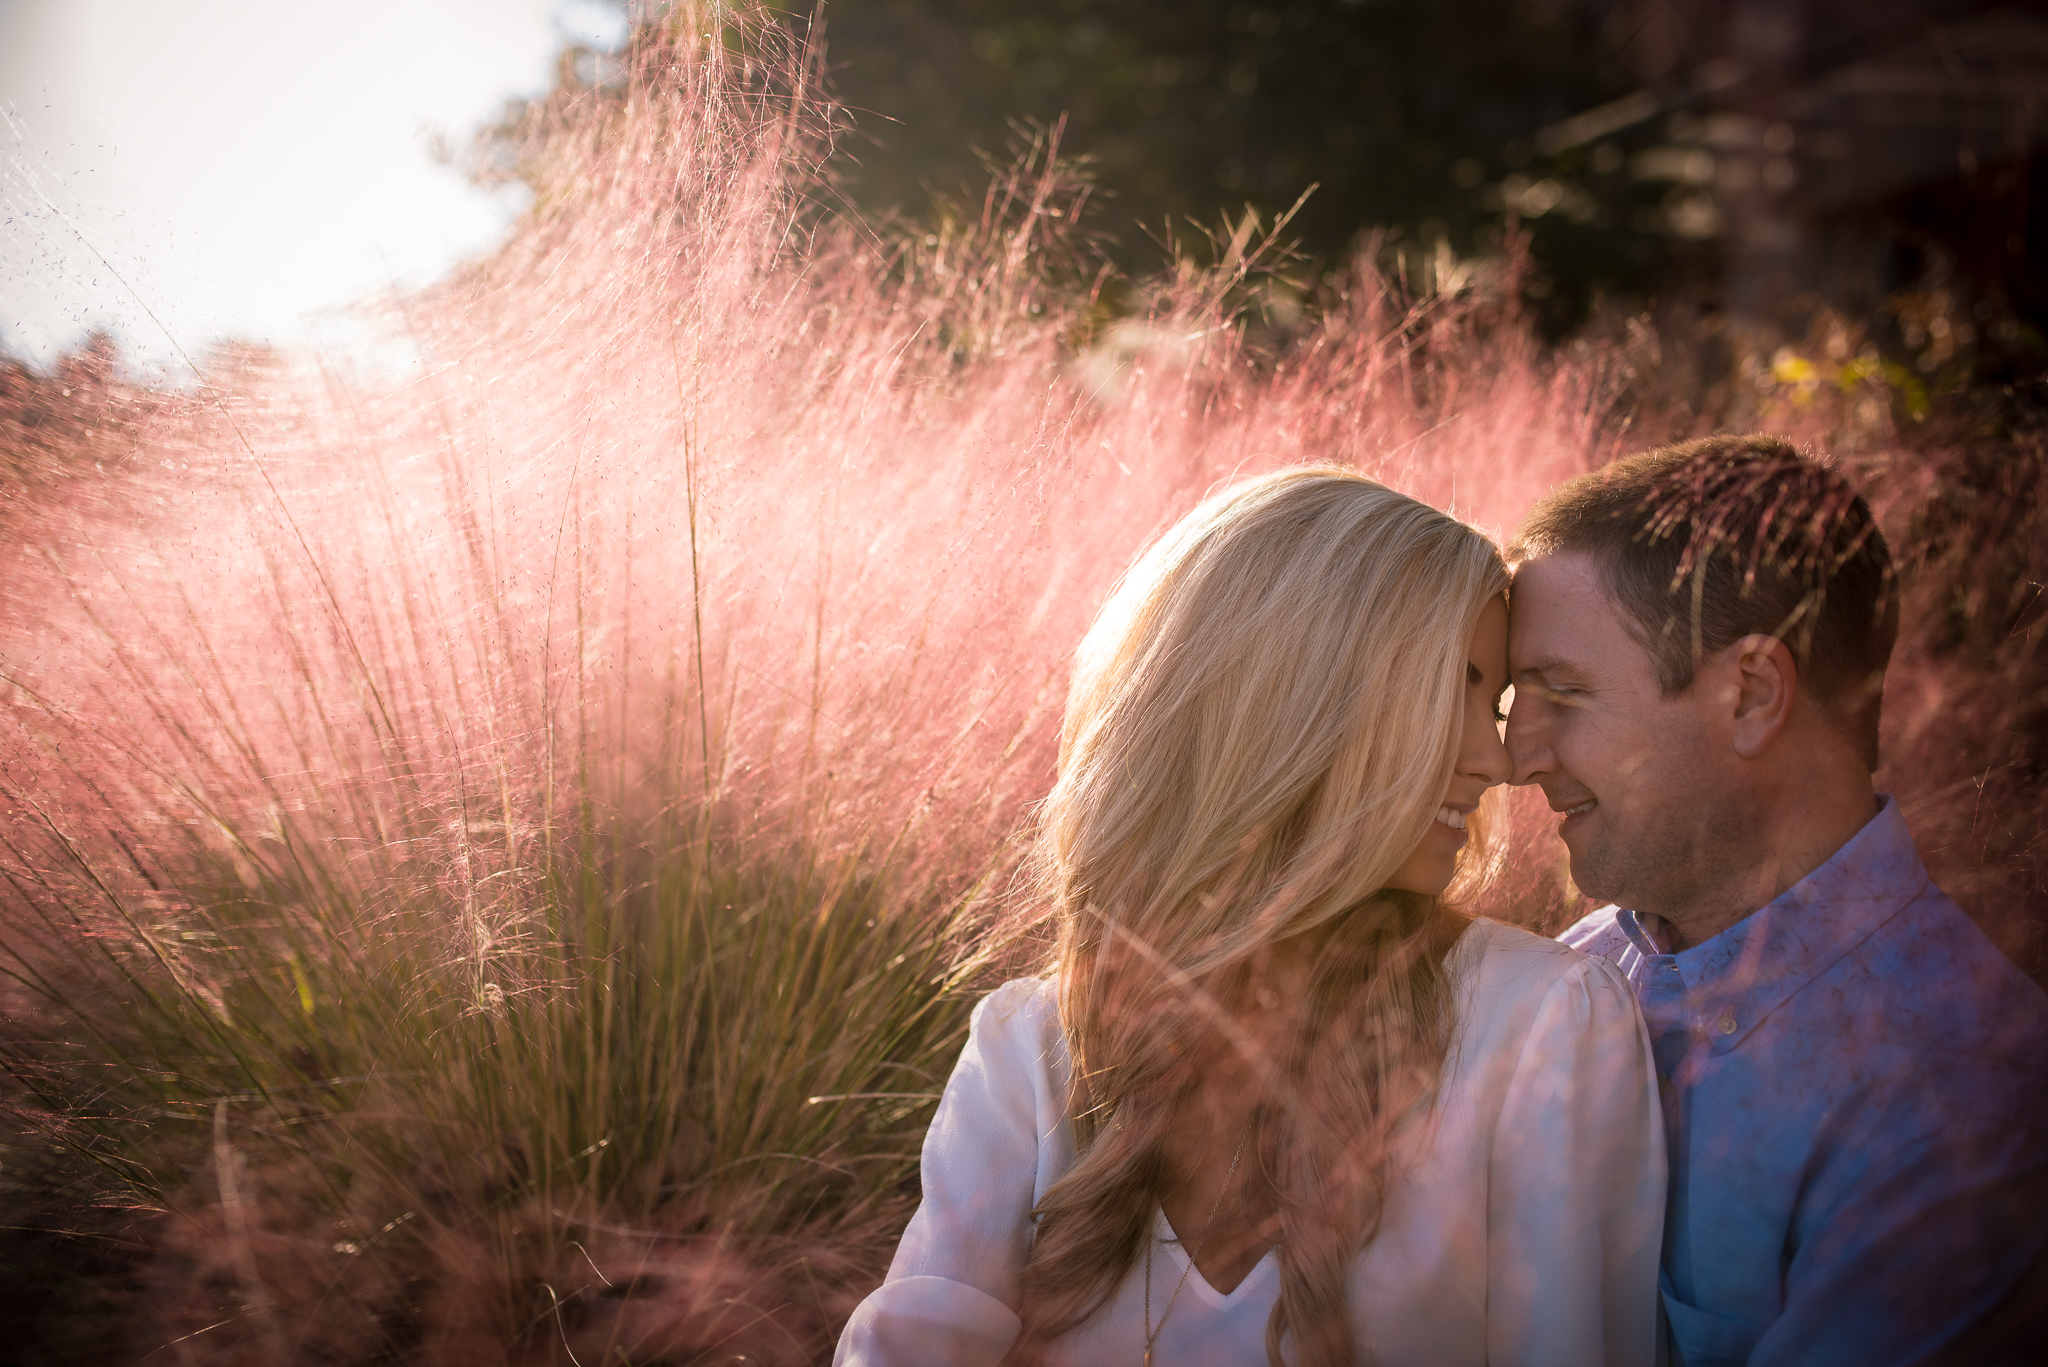 Greenville Engagement Photos | Jenn and Anthony